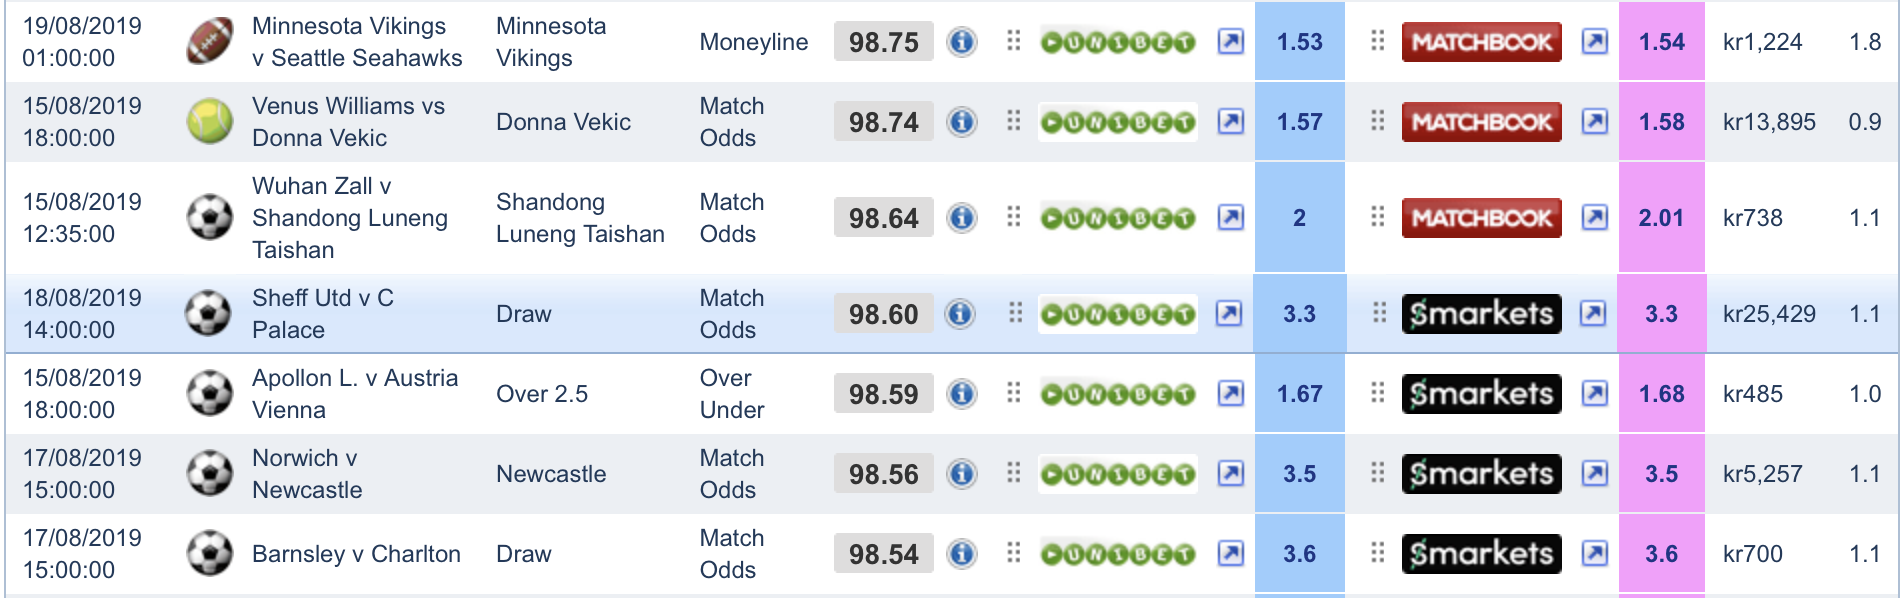 Some matches on Software A, comparing odds between bookie and exchanges.